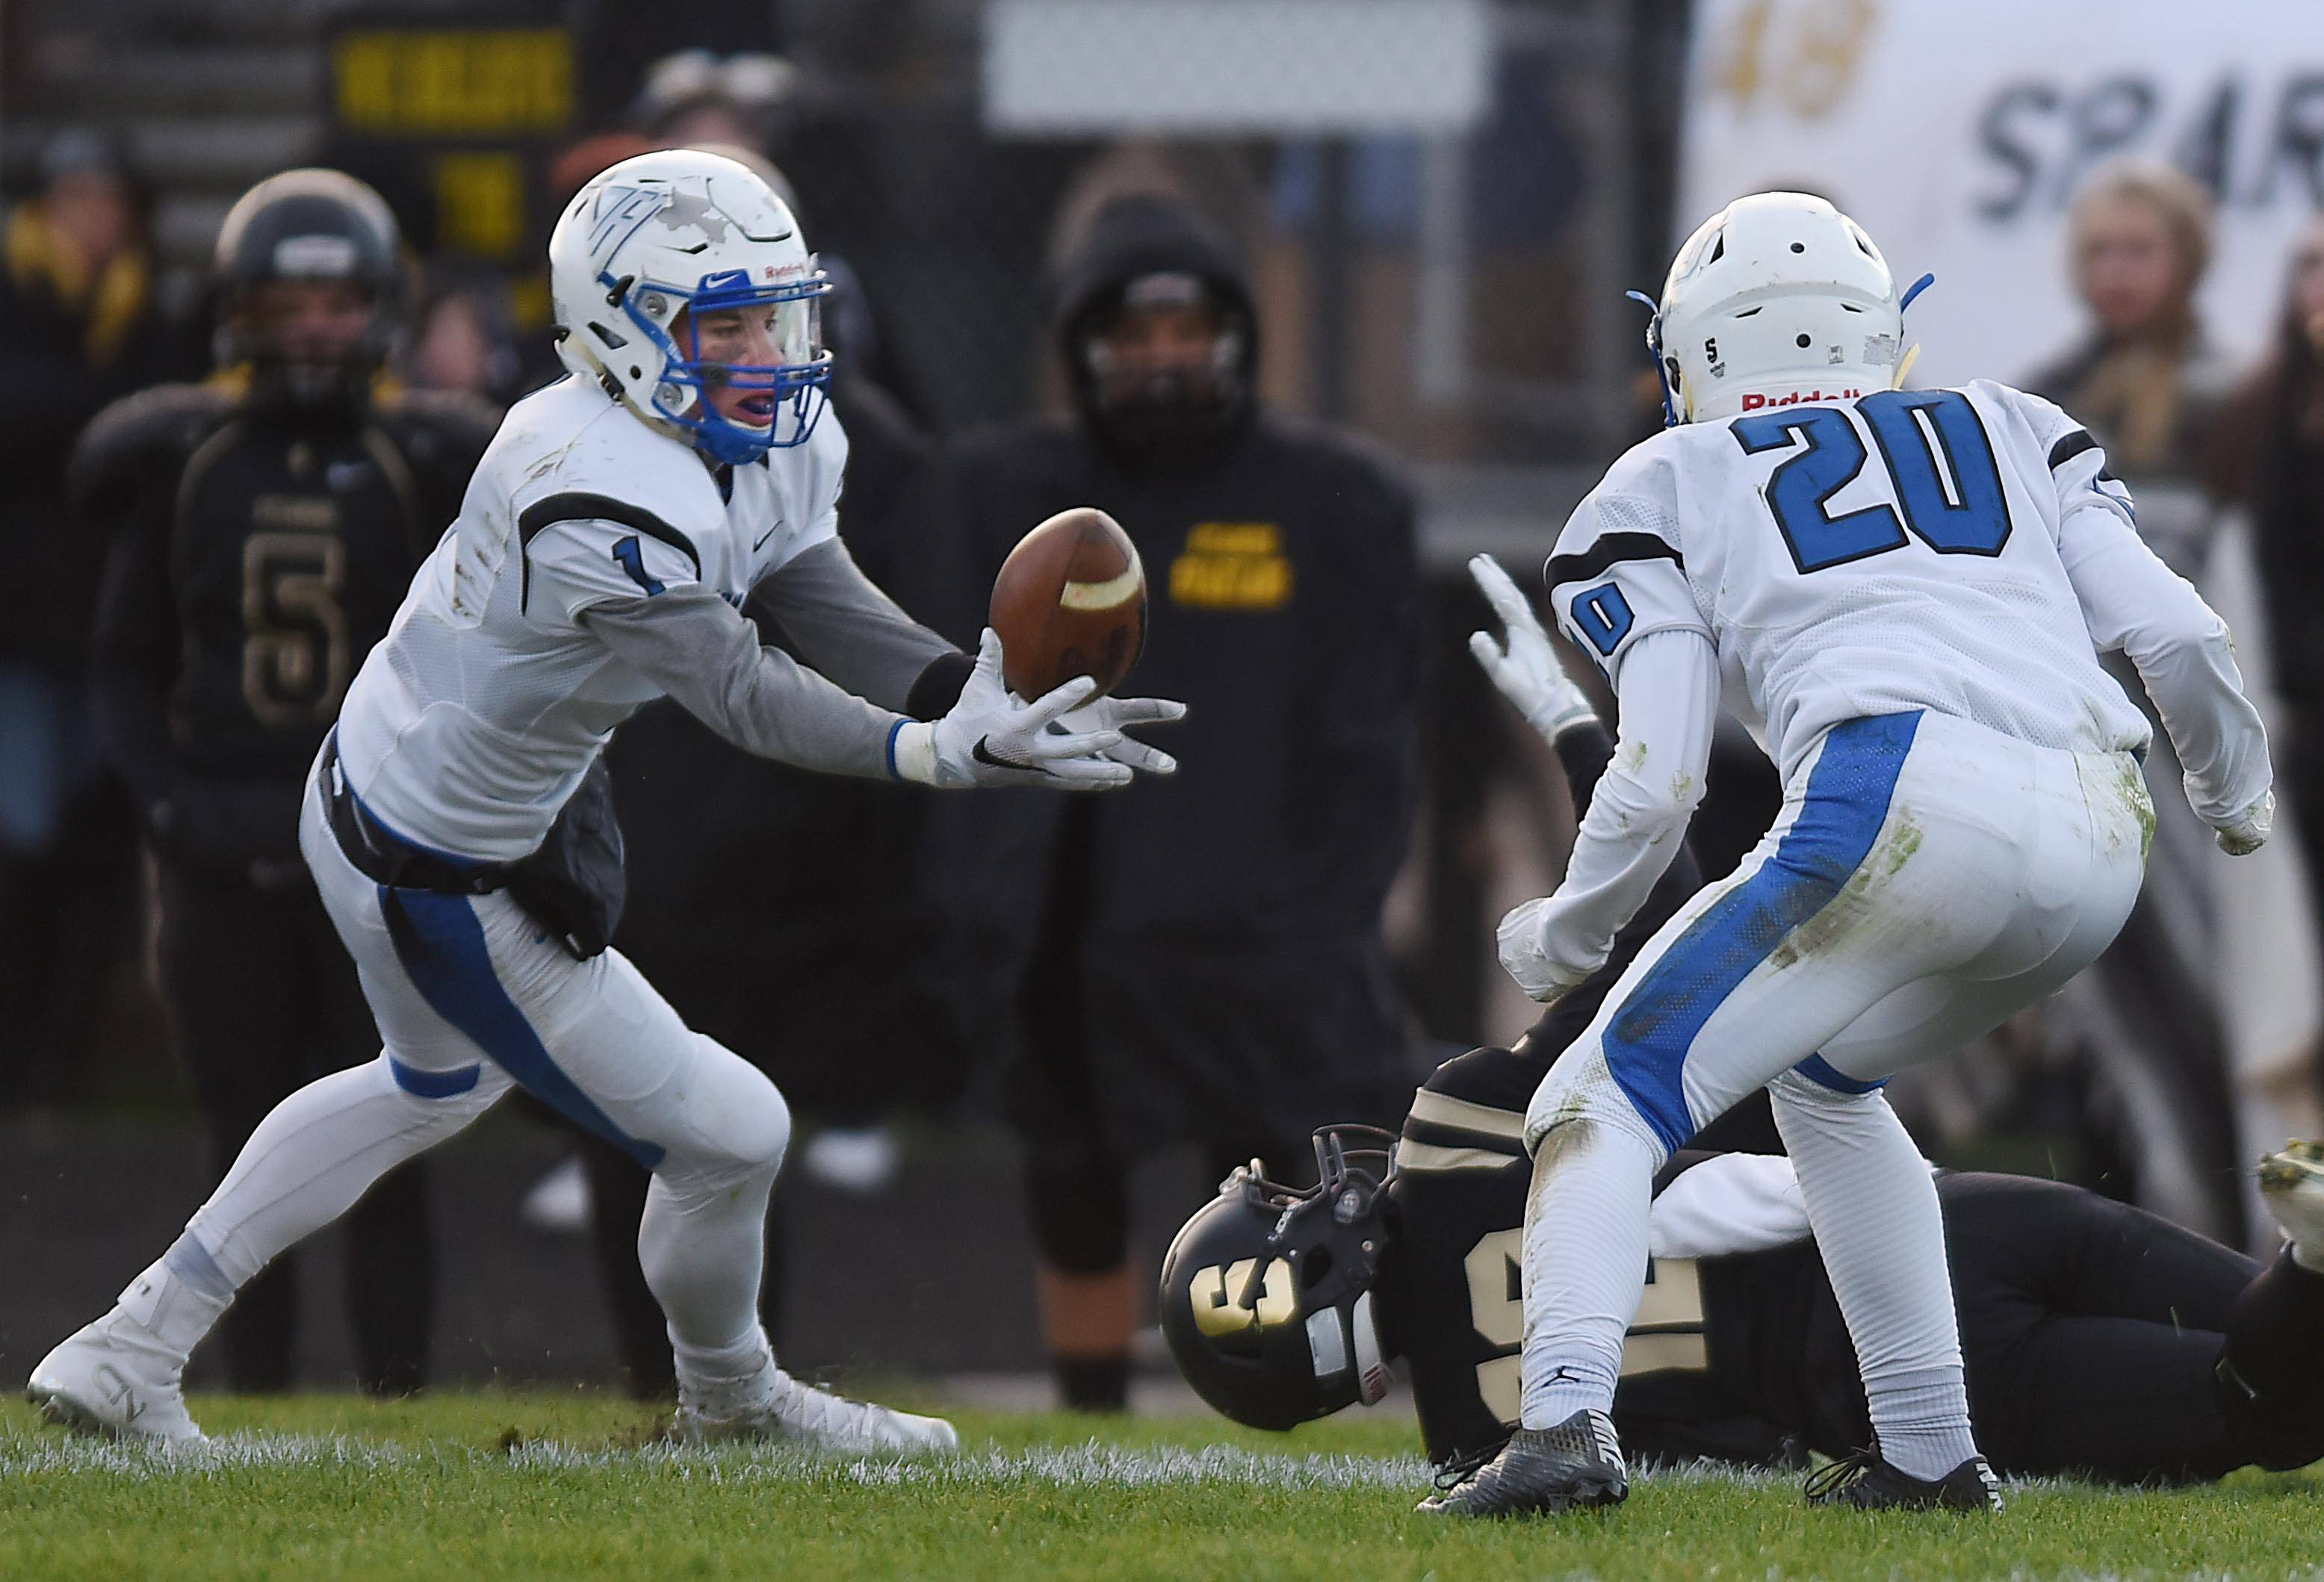 Vernon Hills' Chris Mariella grabs the live ball out of the air after teammate Jake Morris, right, tipped the pass away from Sycamore's Robert Cole, on the ground, in the final minutes Saturday in the Class 5A football state semifinals in Sycamore.